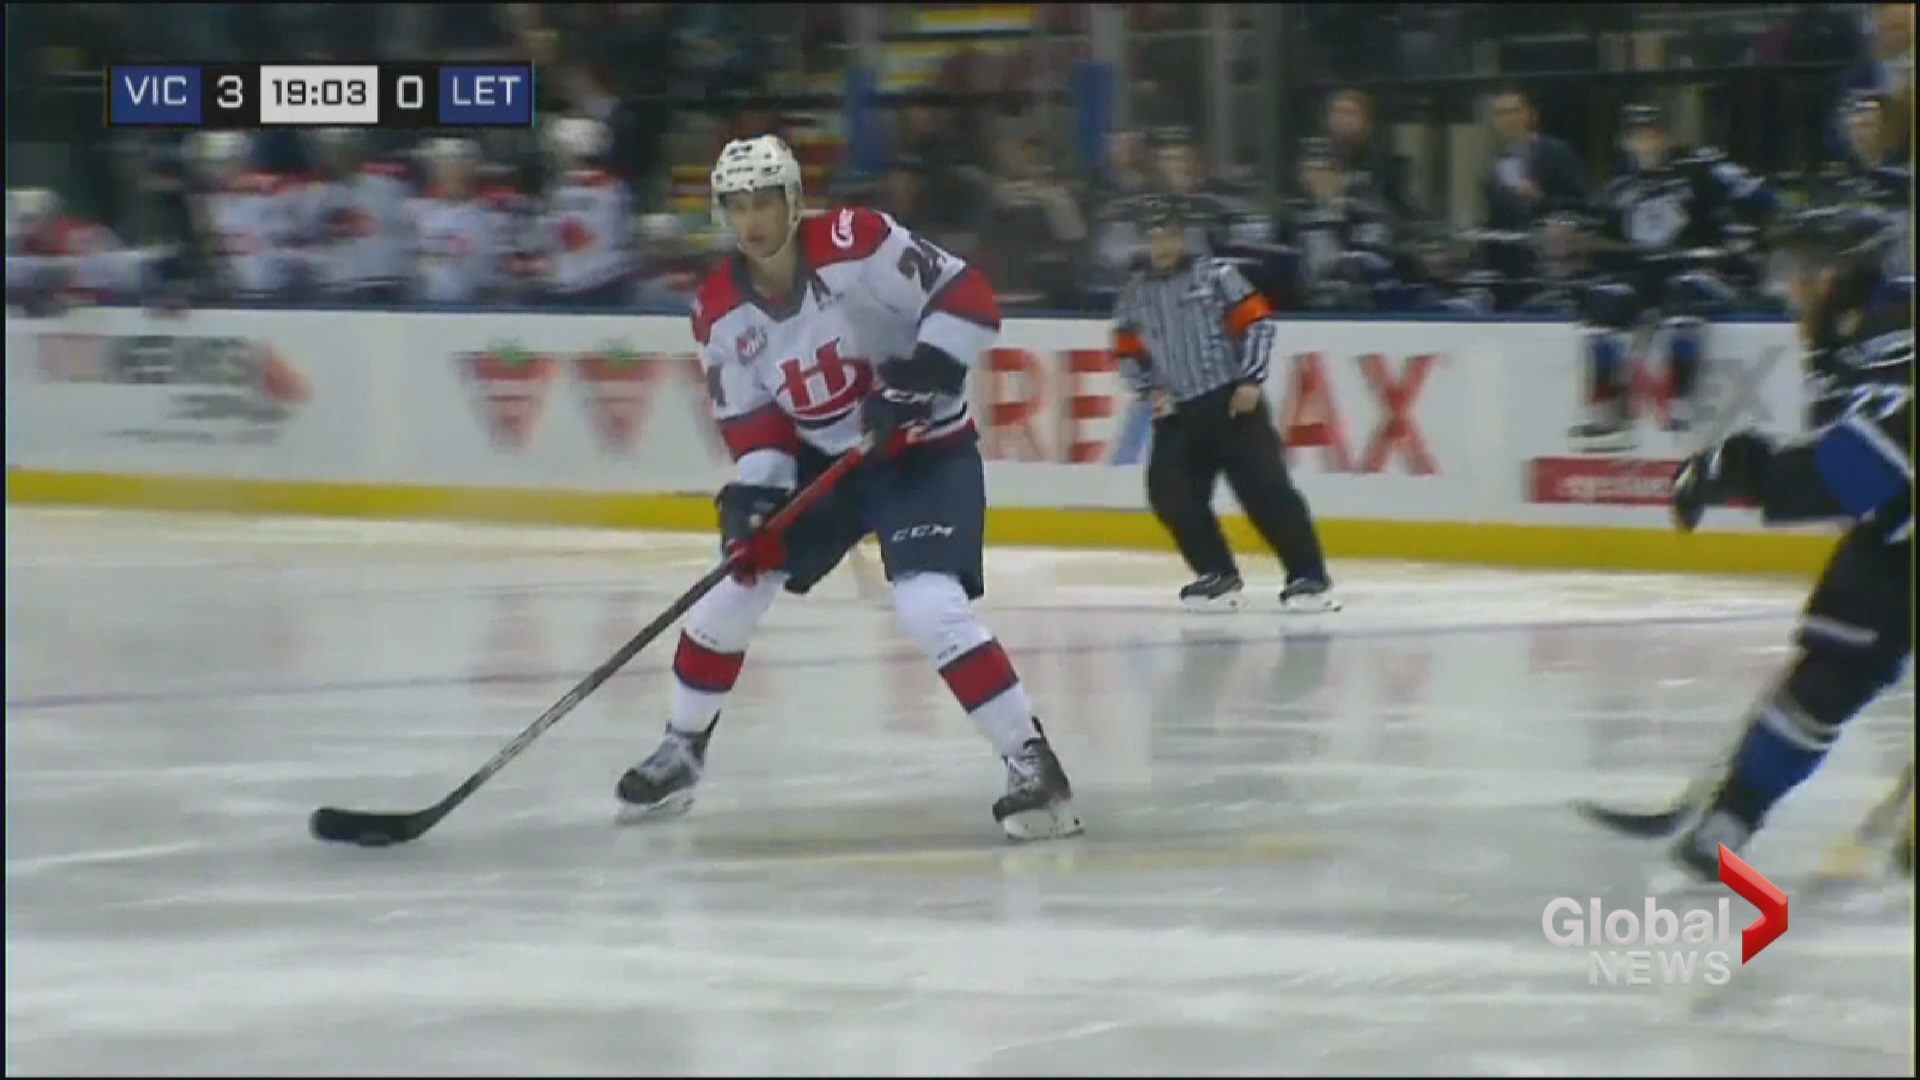 Lethbridge Hurricanes fail to overcome first period struggles against Royals